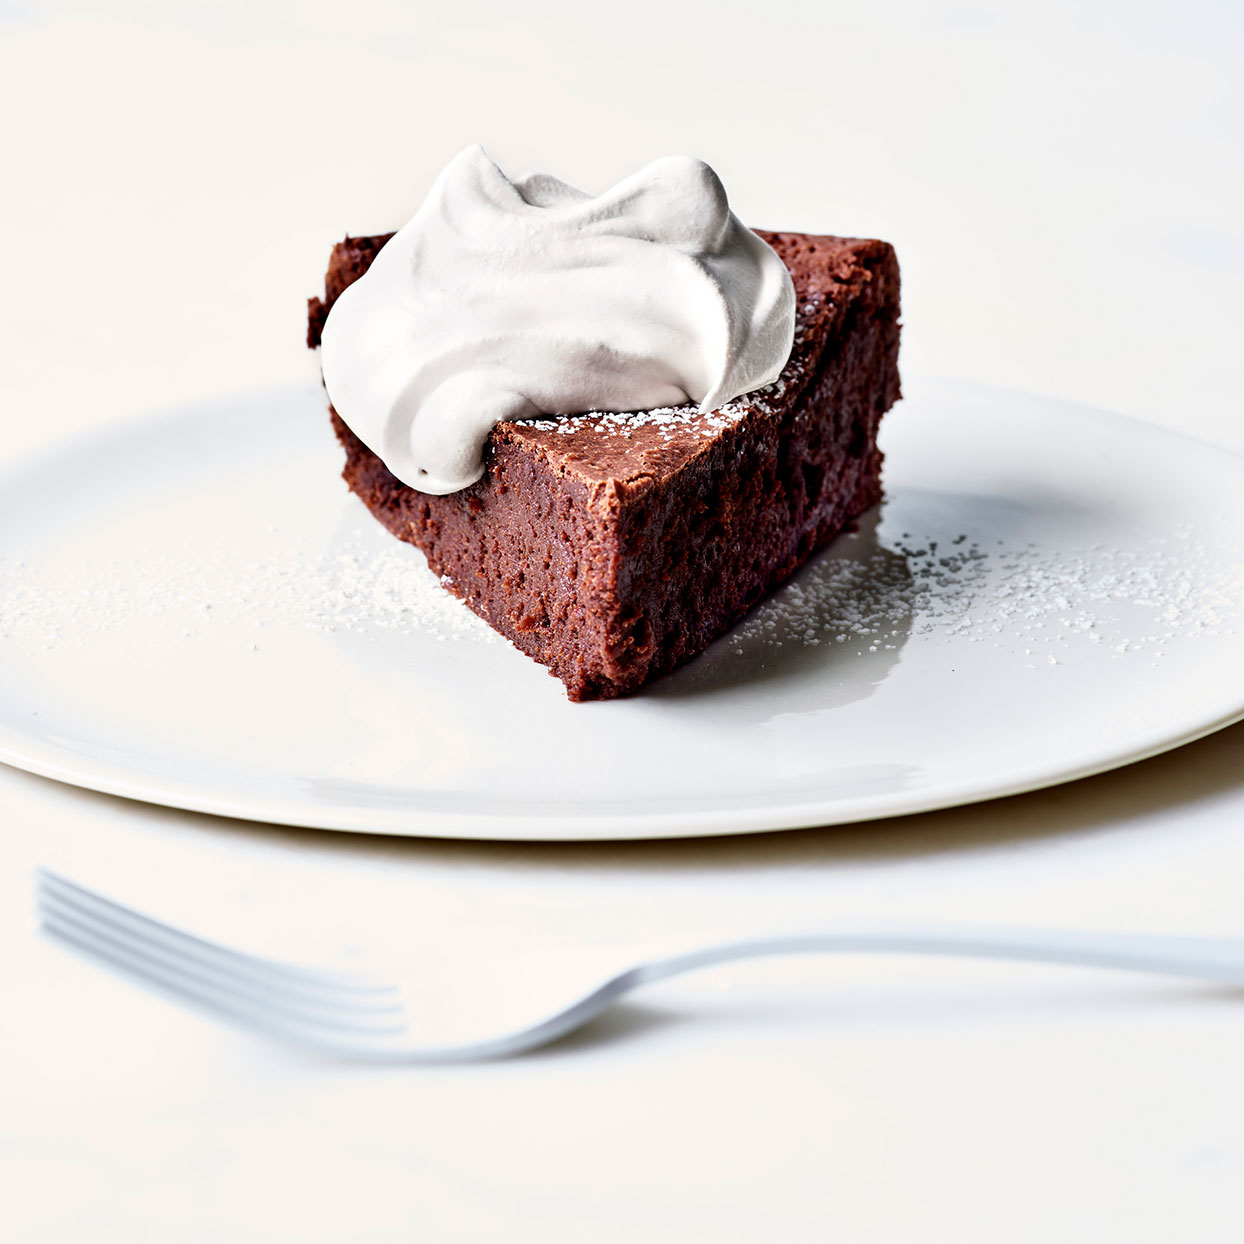 Flourless Chocolate Cake with Chile